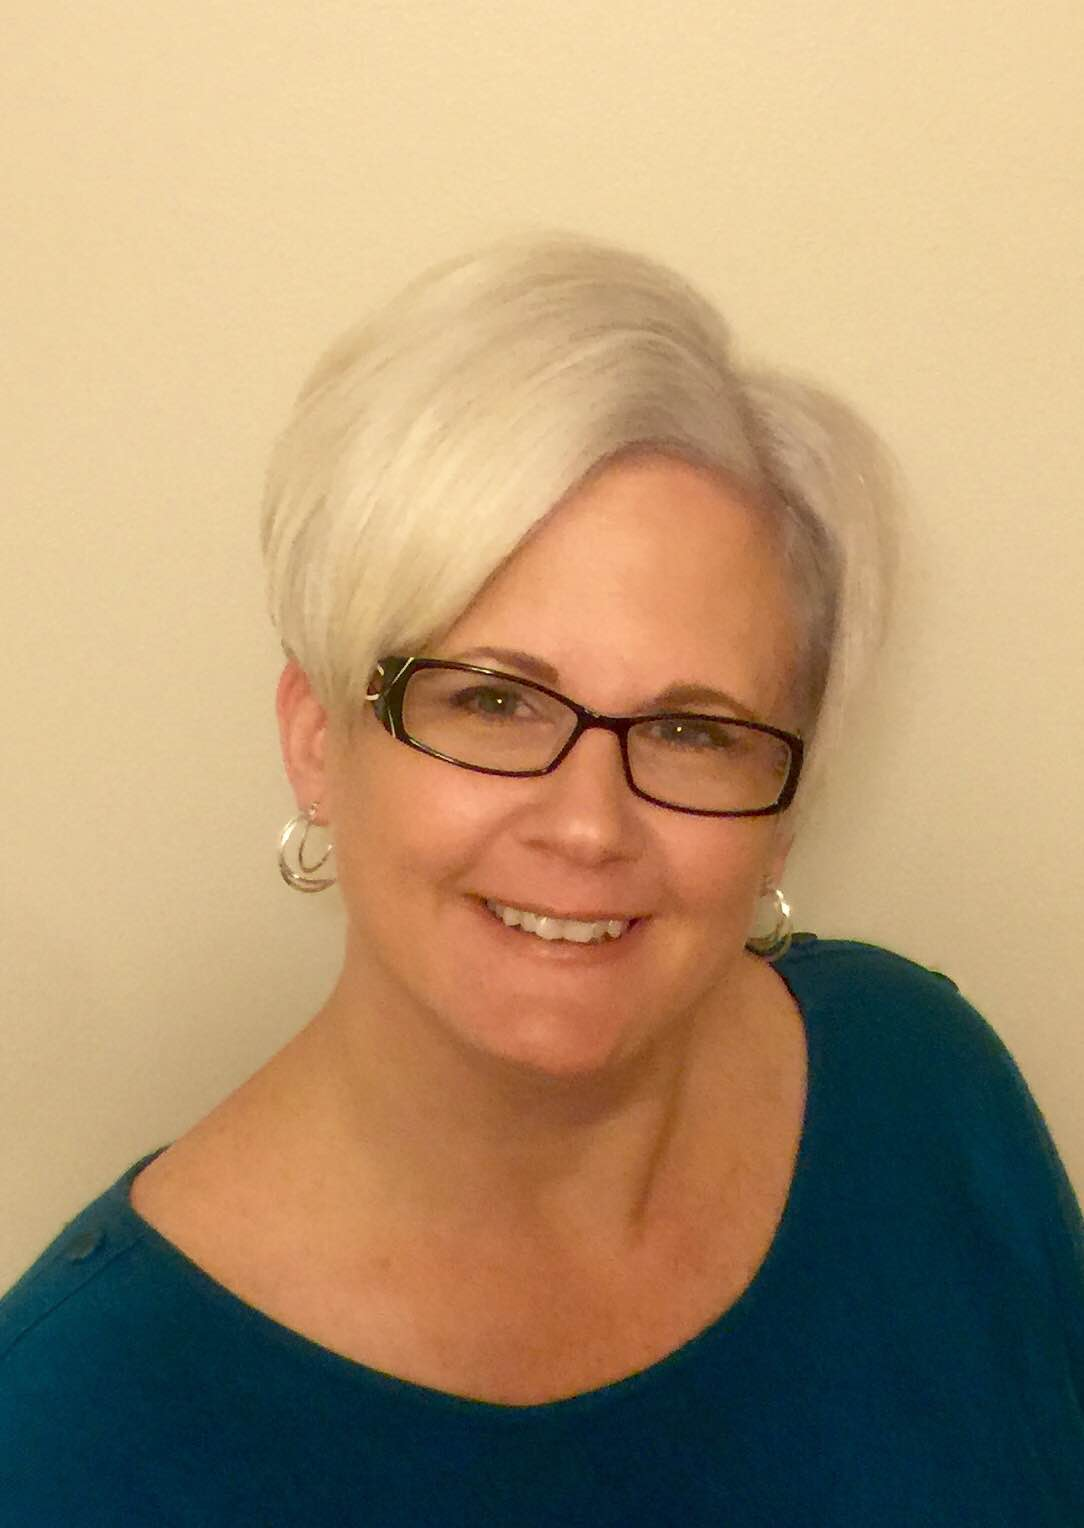 Meet Jenay Kightlinger-Sharp, Matchbook Learning's new Director of Human Resources!